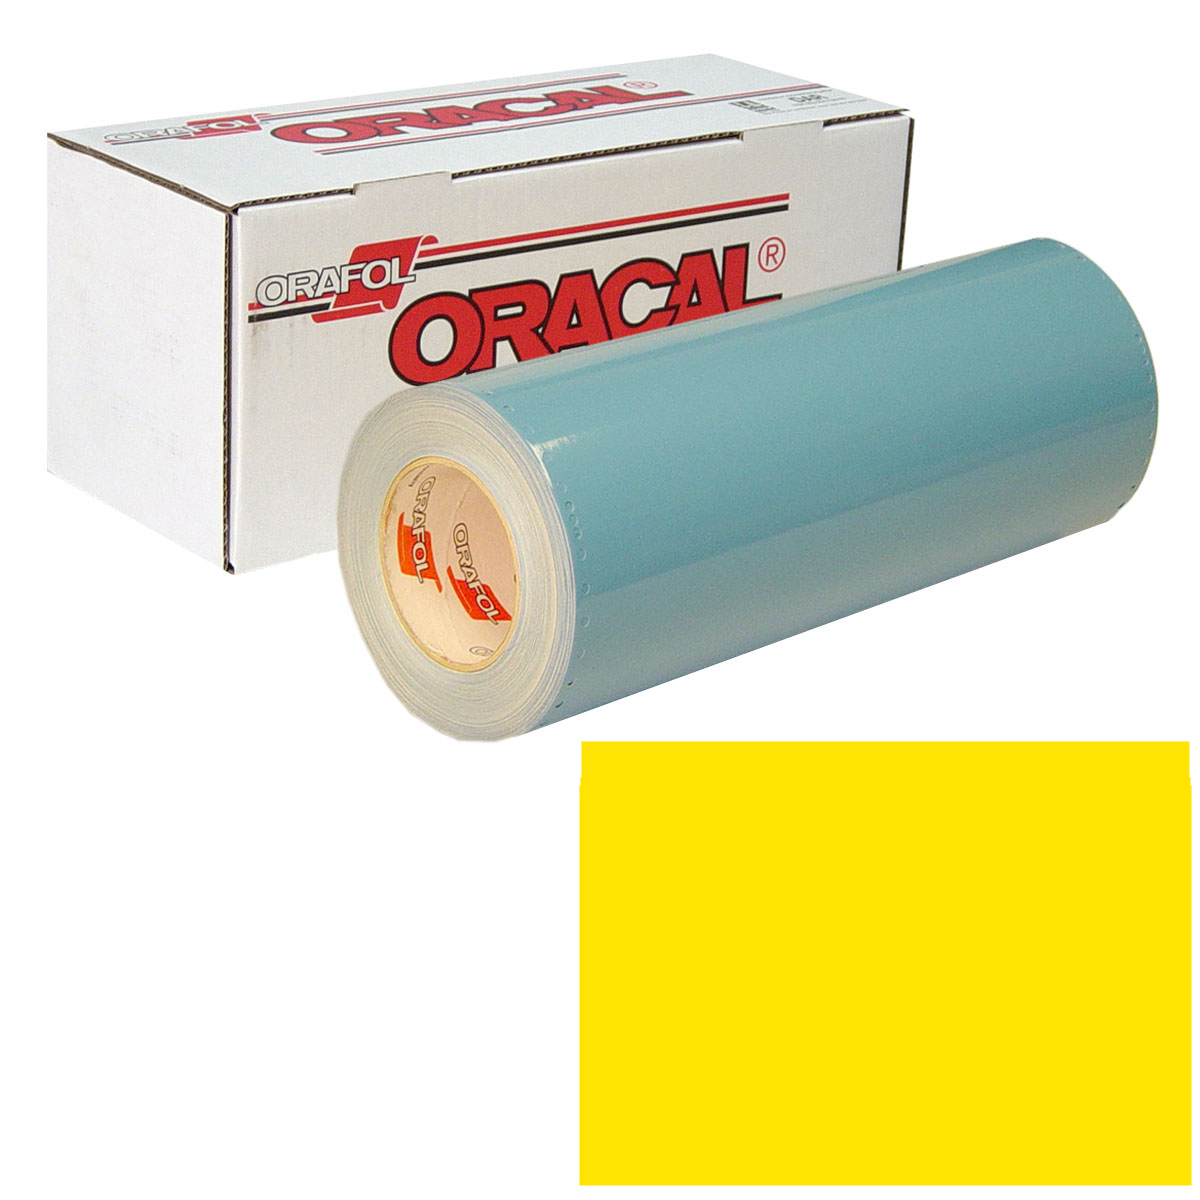 ORACAL 751 Unp 24In X 50Yd 022 Light Yellow